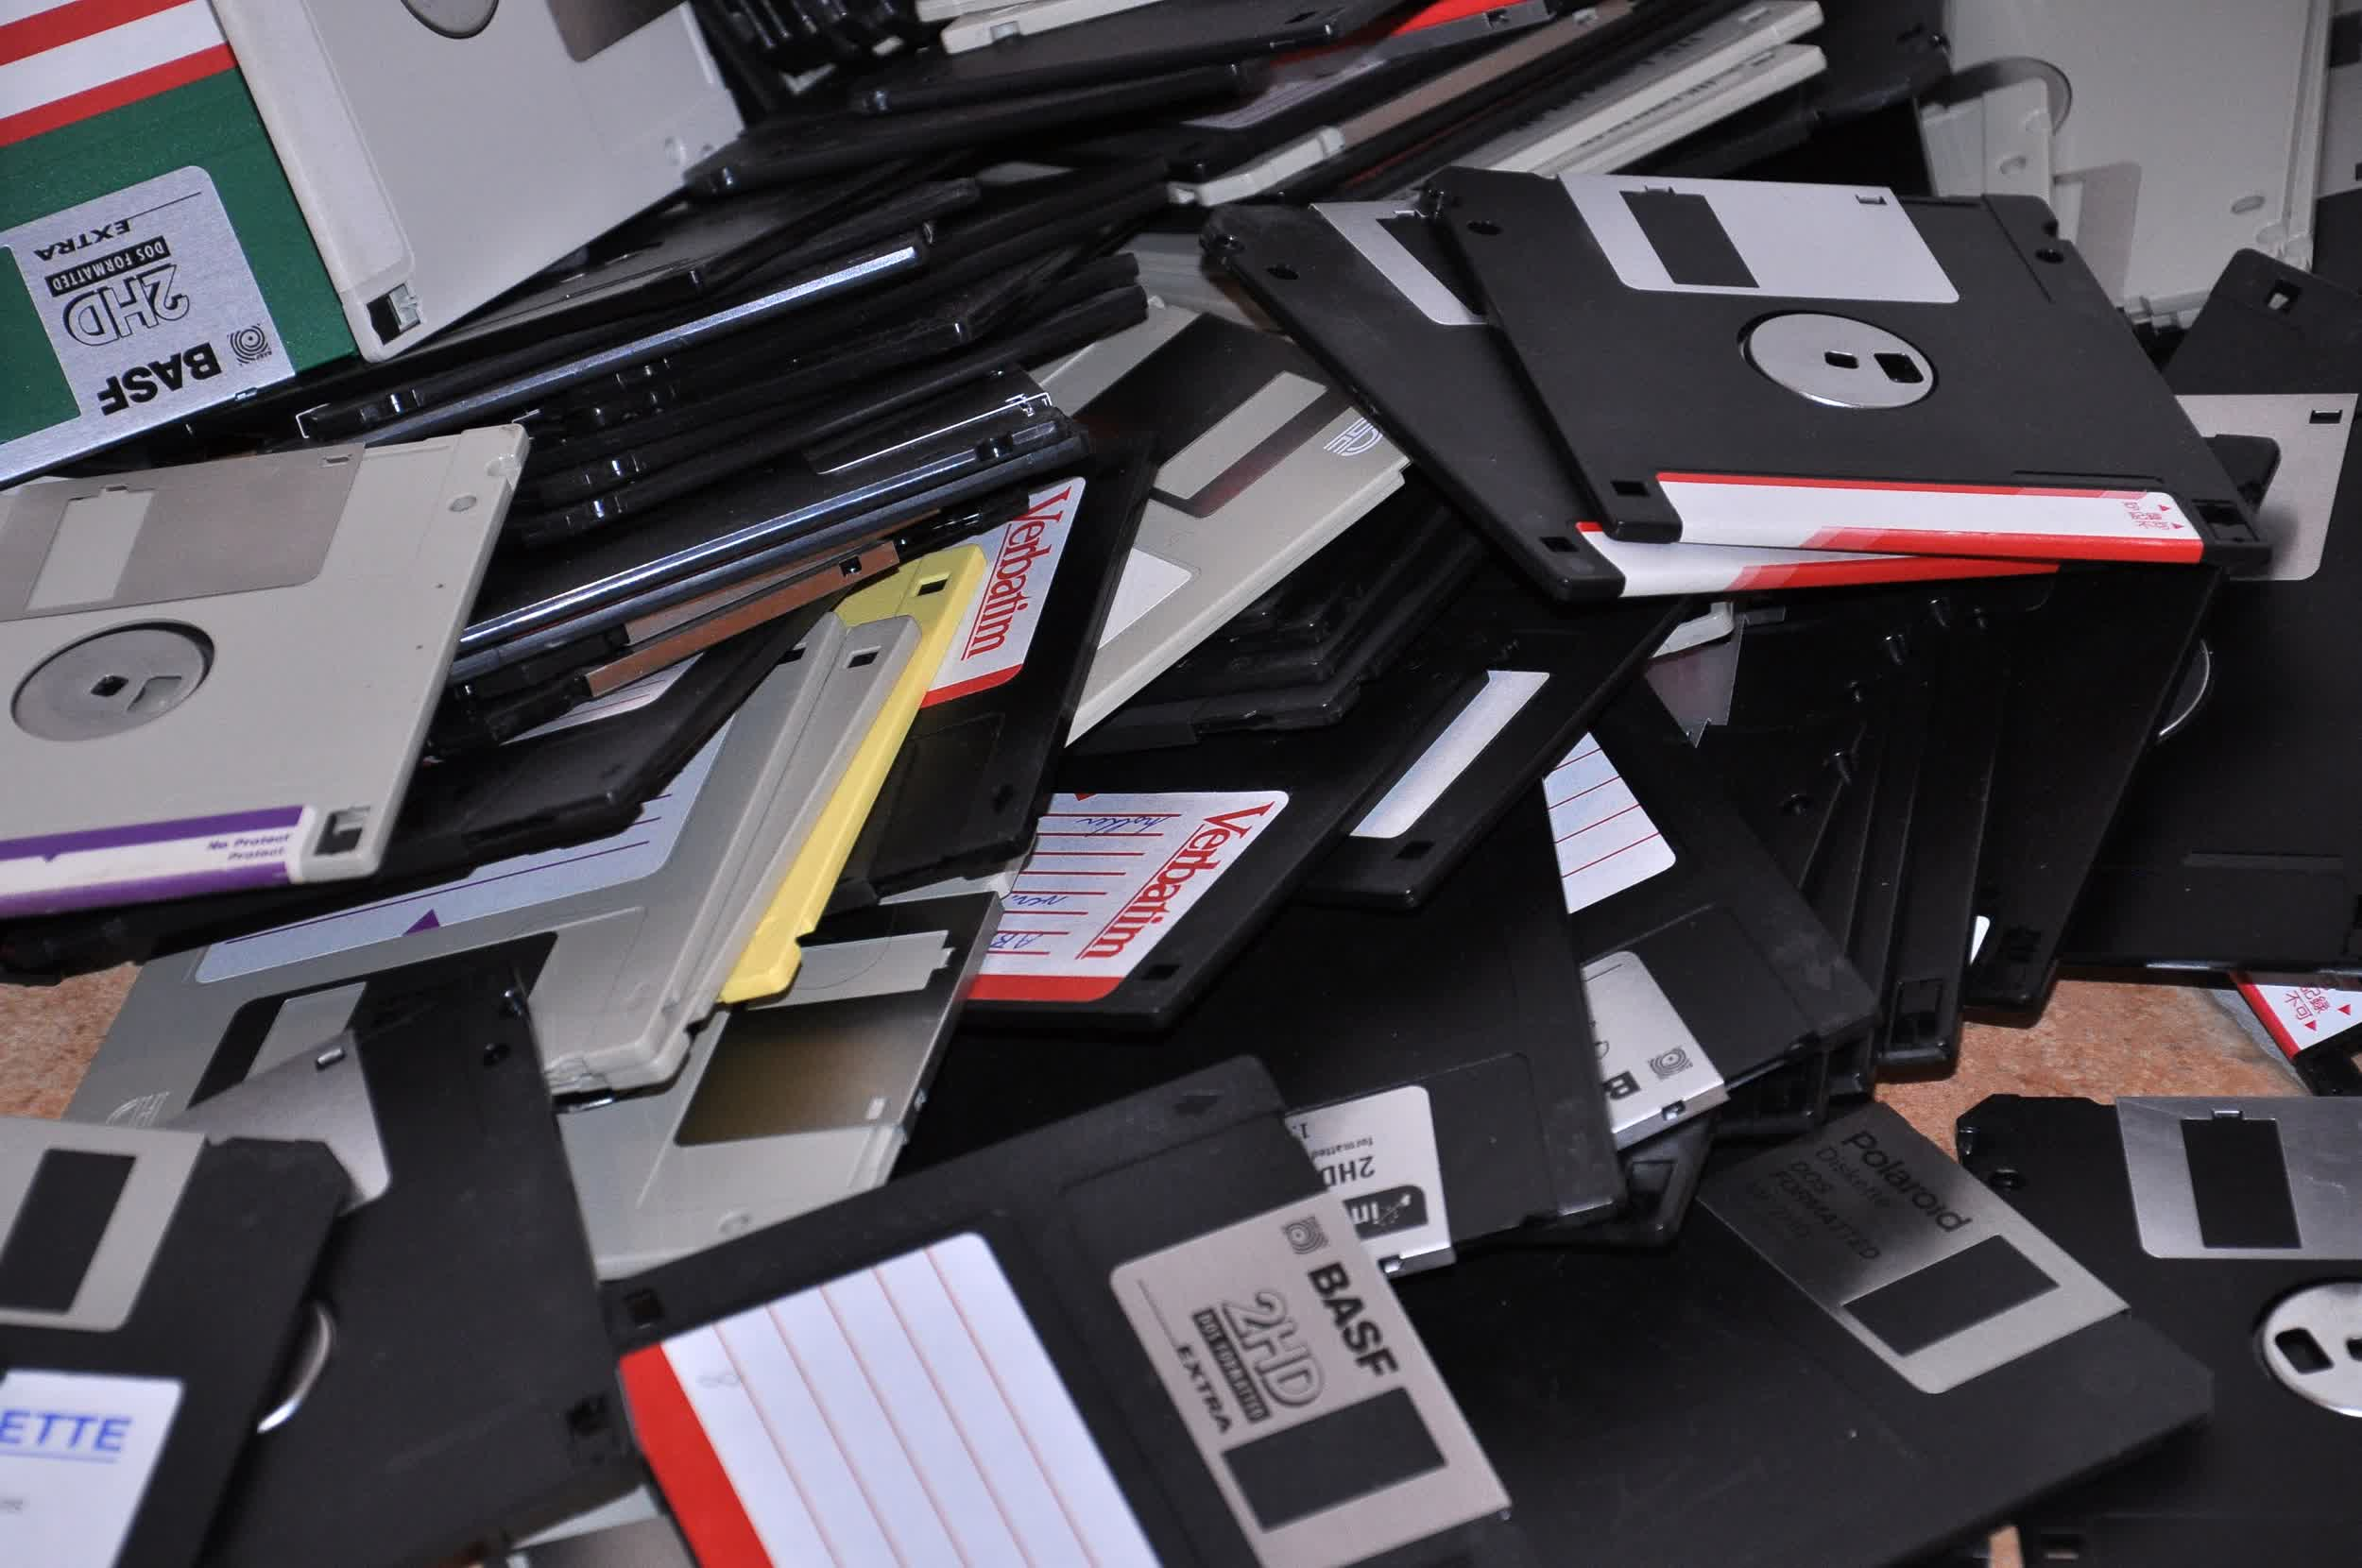 Someone crammed a full-length movie onto a 1.44MB floppy disk